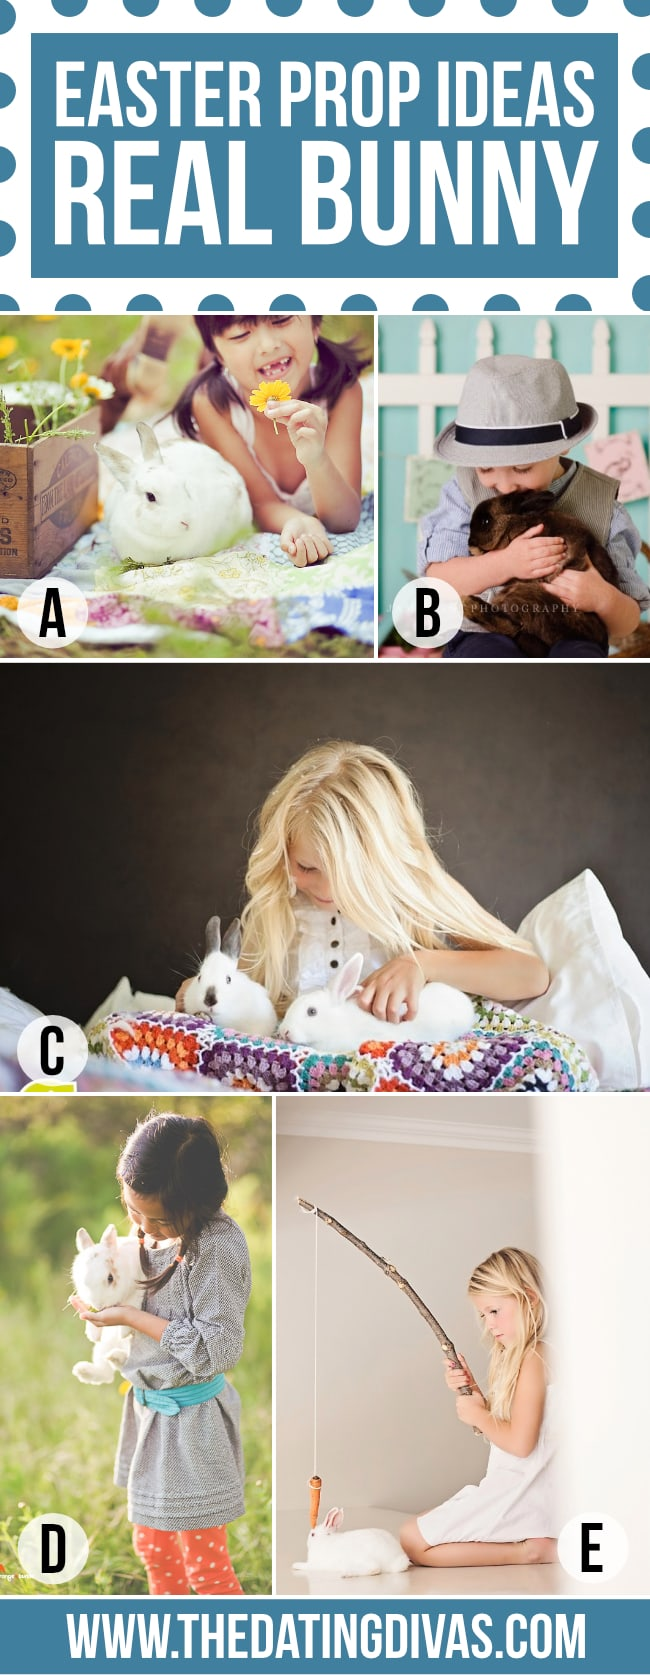 Easter Bunny picture ideas